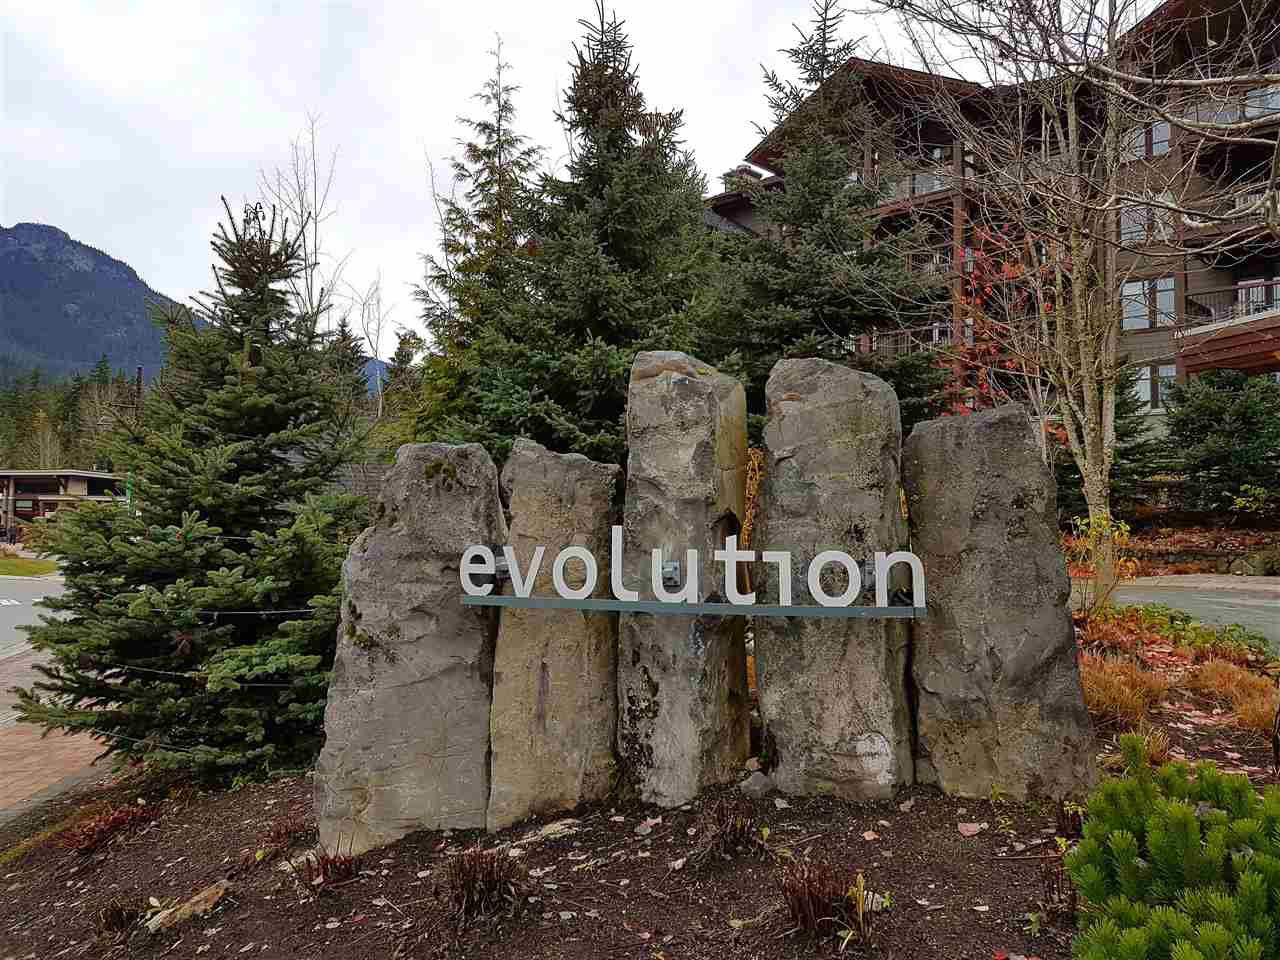 Main Photo: 302c 2020 LONDON Lane in Whistler: Whistler Creek Condo for sale : MLS®# R2122014